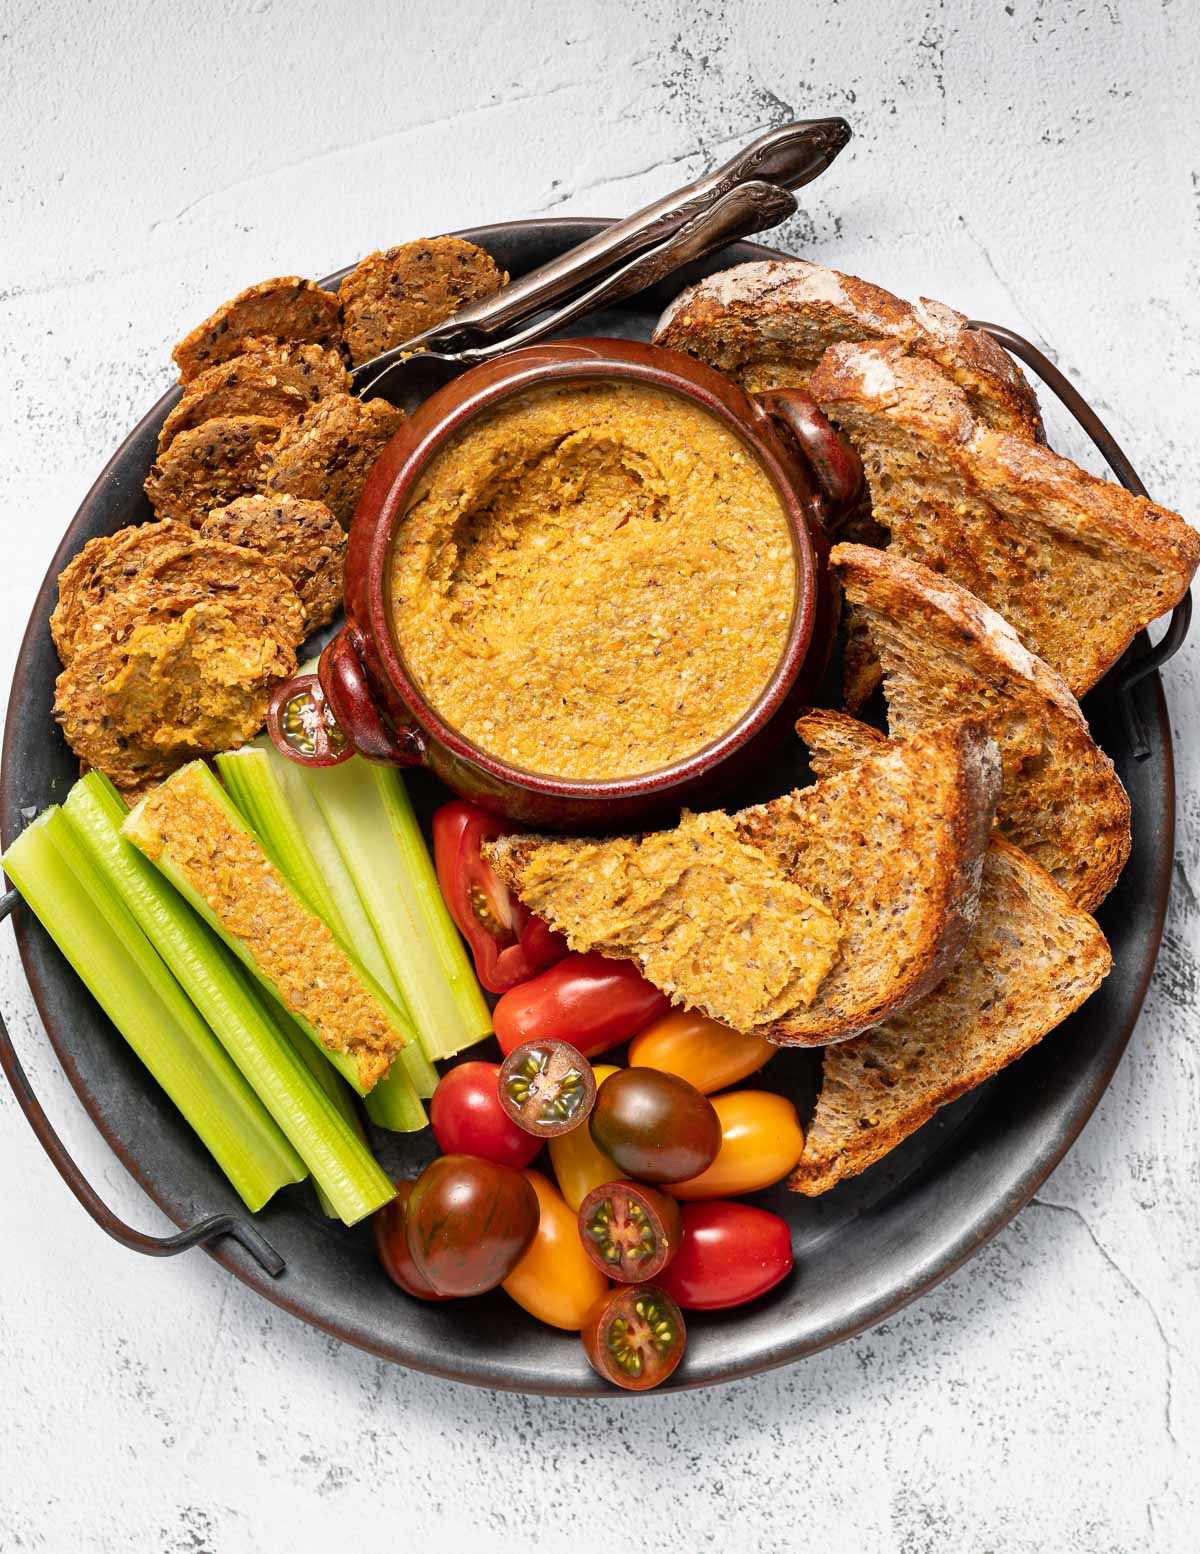 a tray of vegetable pate and accompiments